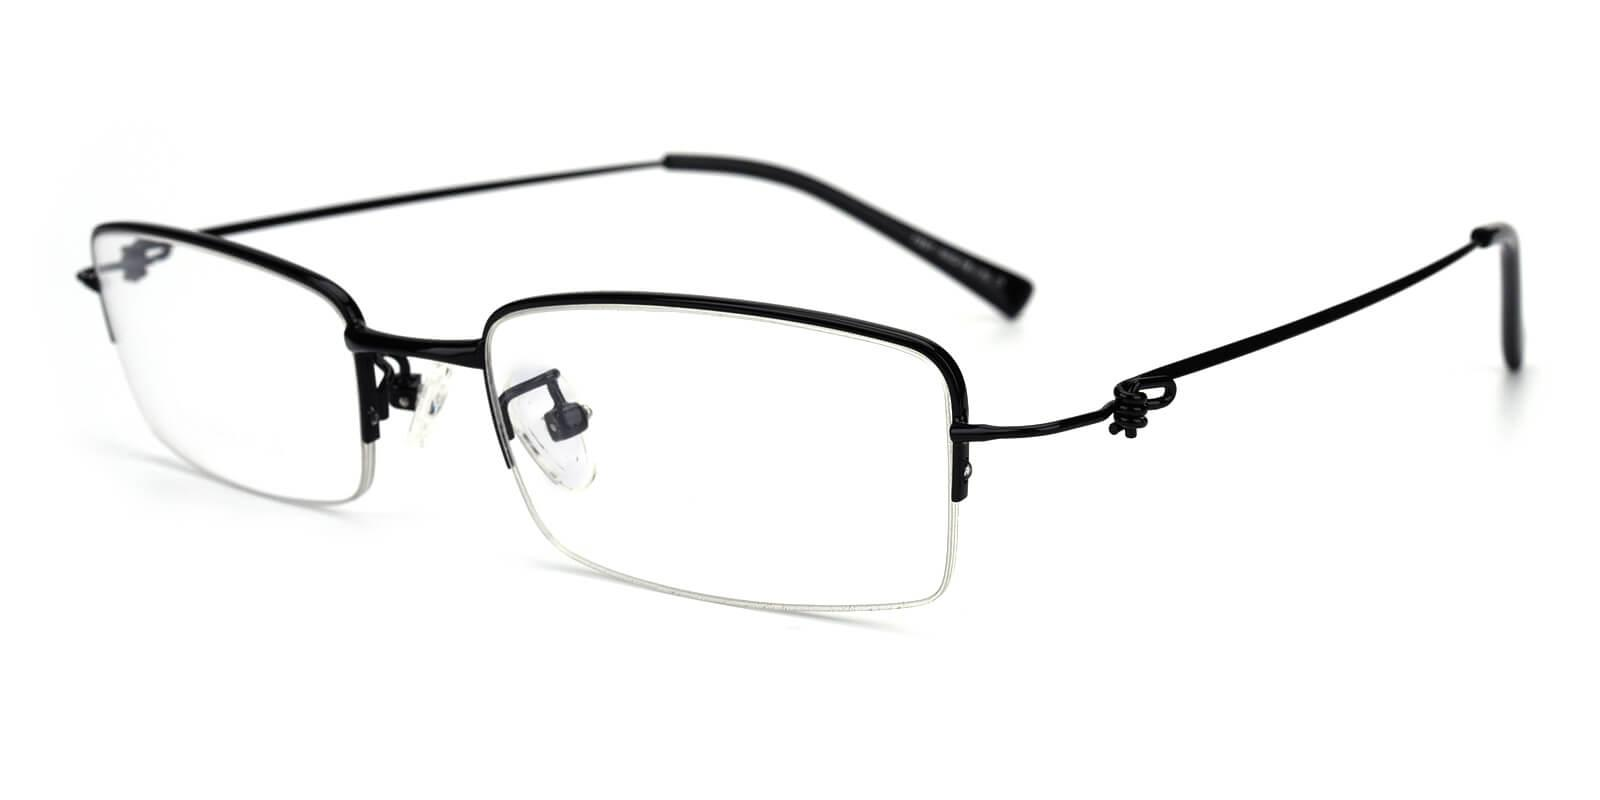 Rector-Black-Rectangle-Metal-Eyeglasses-additional1